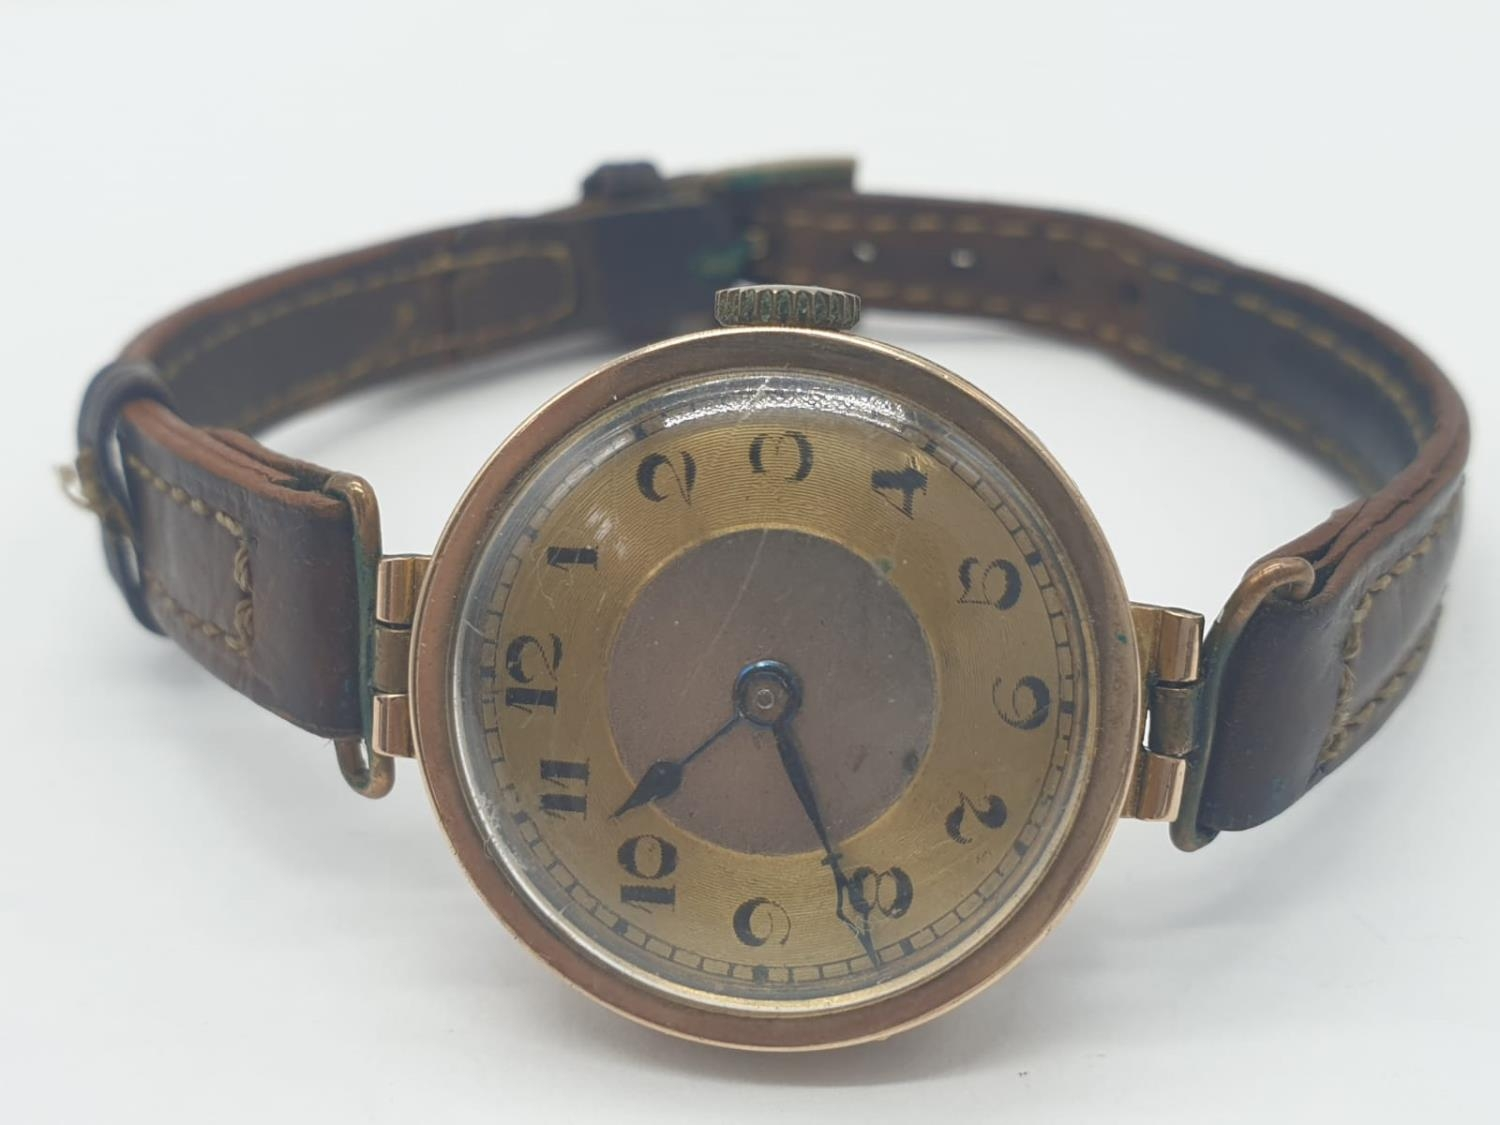 Vintage 9ct gold ladies wrist watch with leather strap - Image 2 of 9